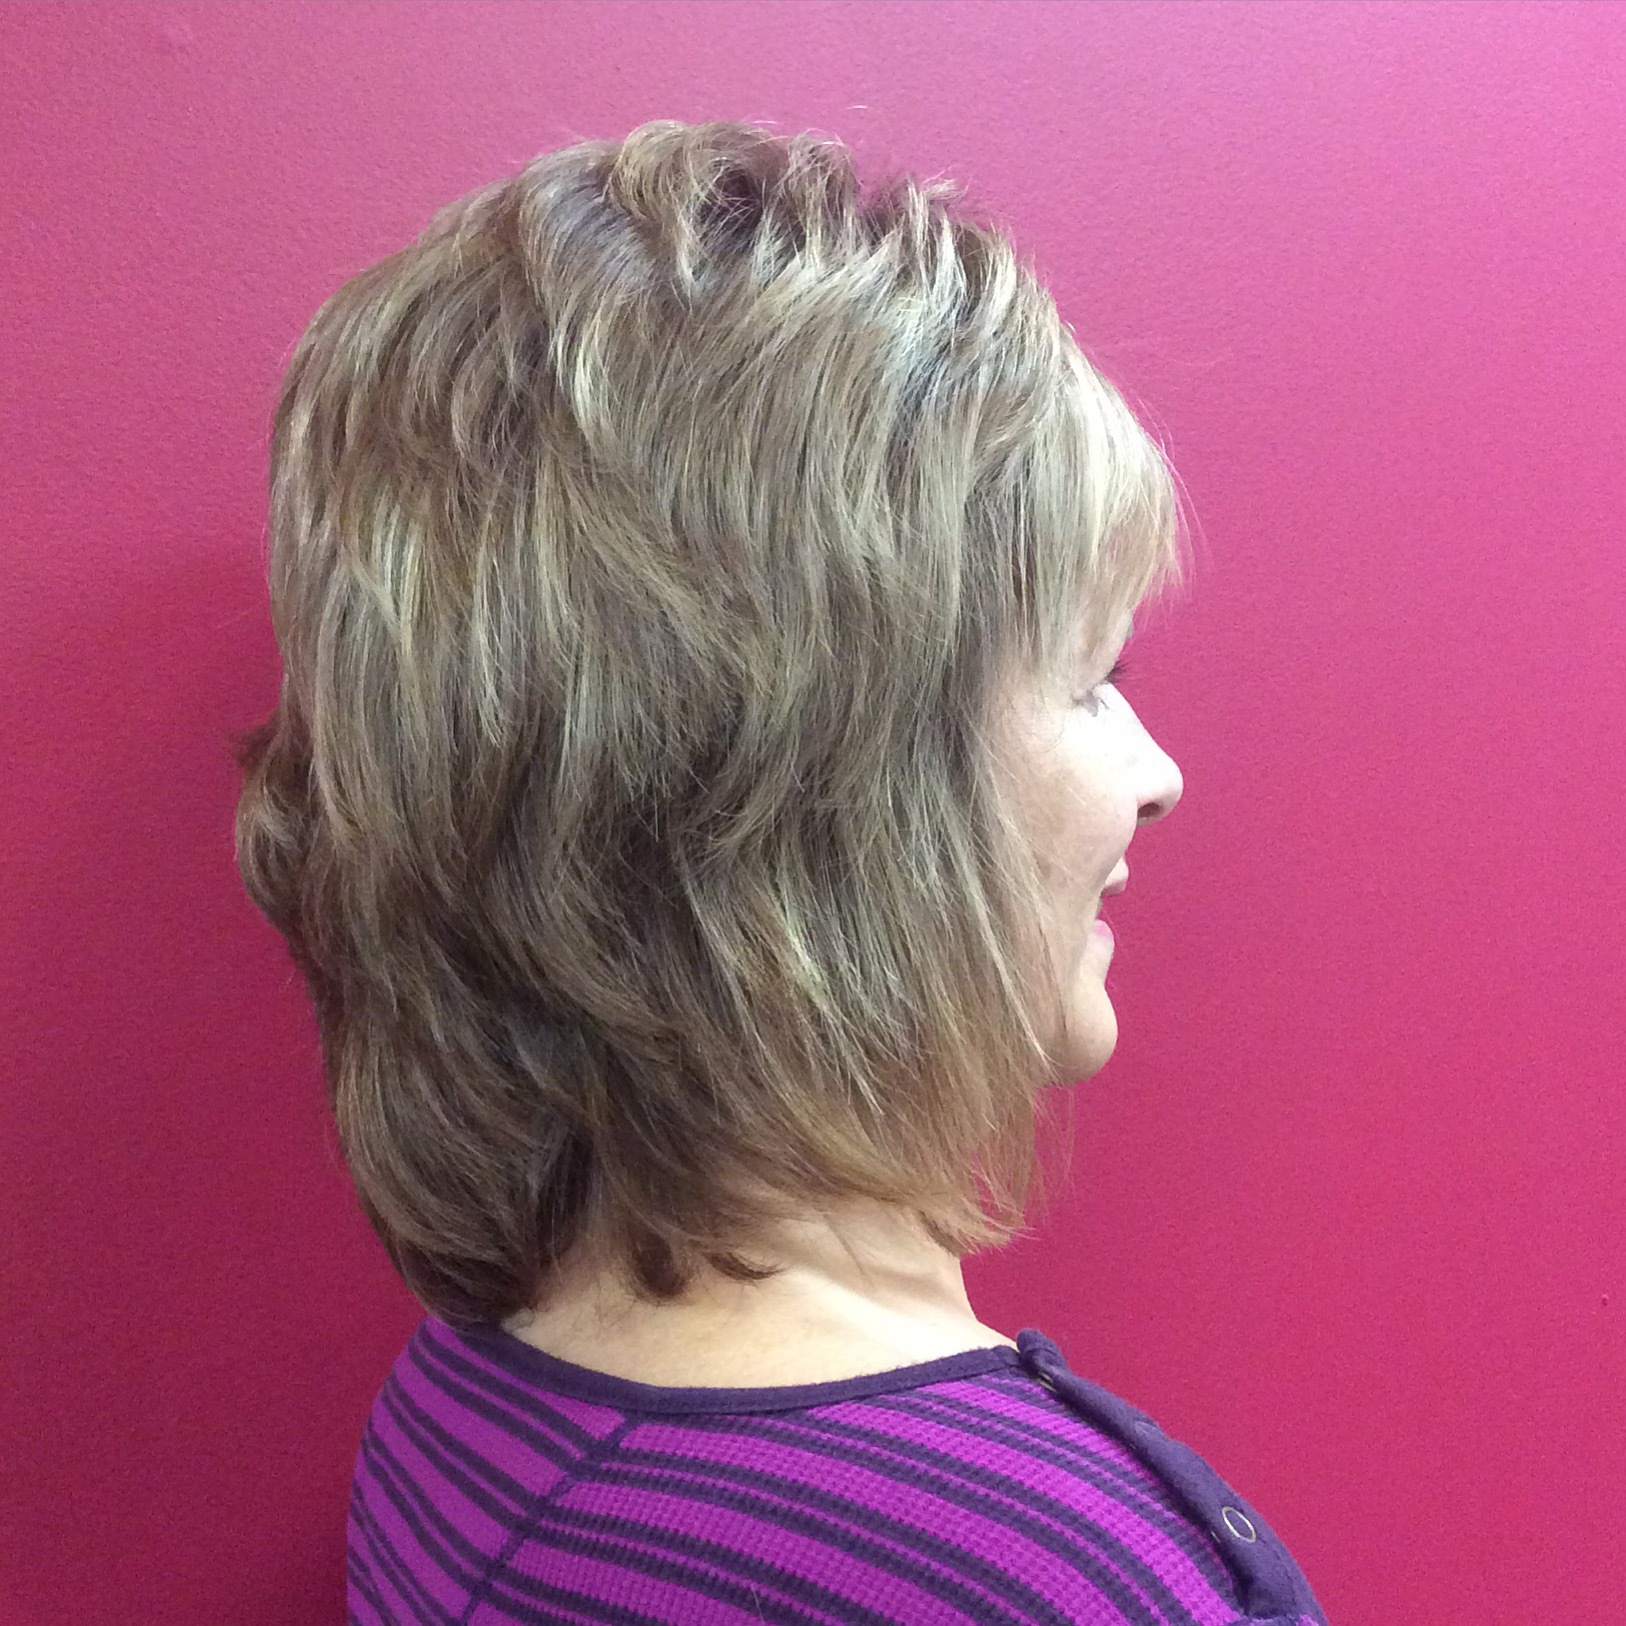 Cut and Color by Janina